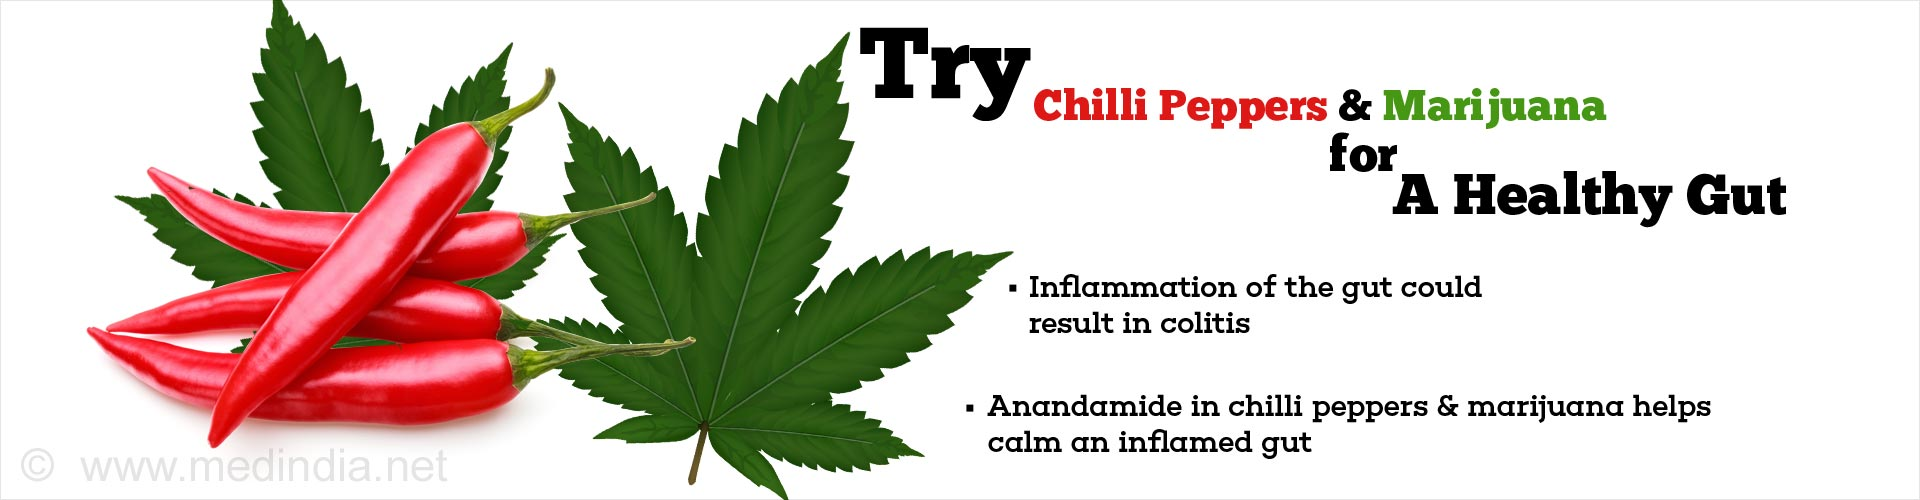 Can You Chill Out an Inflamed Gut With Chilli Peppers and Marijuana?